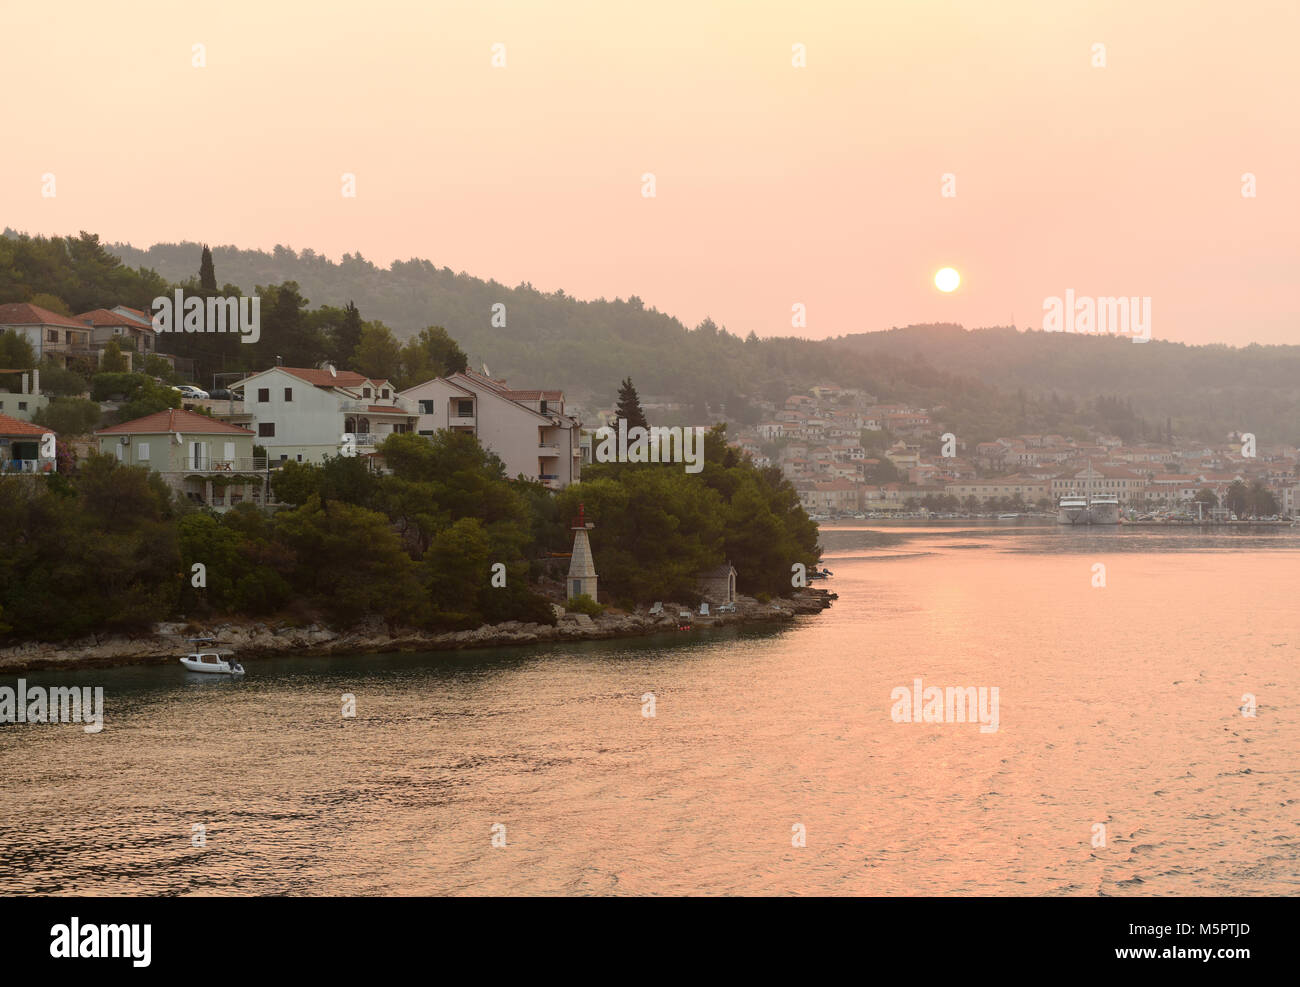 Sunrise in Vela Luka on island Korcula, Croatia. - Stock Image